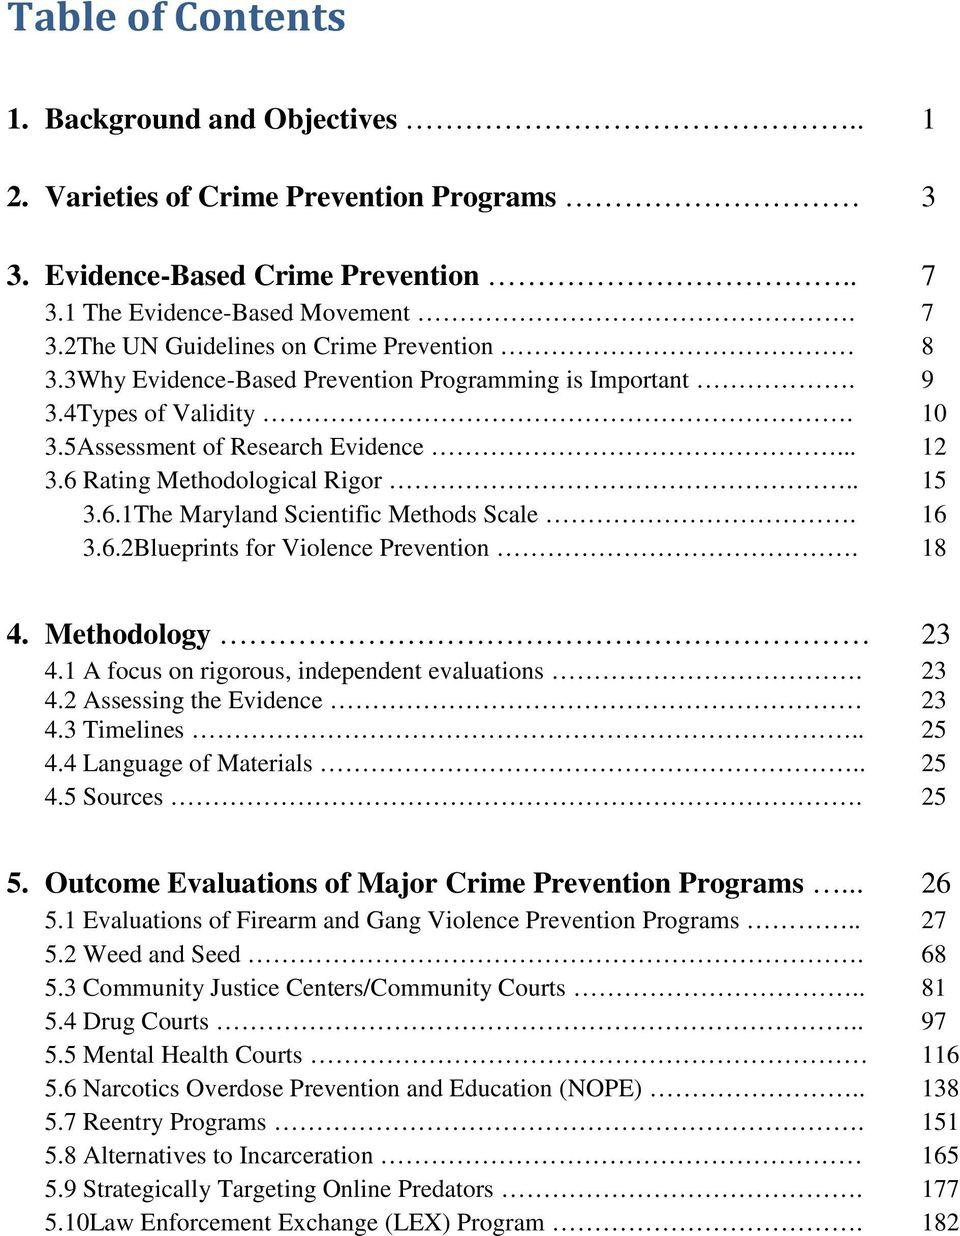 16 3.6.2Blueprints for Violence Prevention. 18 4. Methodology 23 4.1 A focus on rigorous, independent evaluations. 23 4.2 Assessing the Evidence 23 4.3 Timelines.. 25 4.4 Language of Materials.. 25 4.5 Sources.